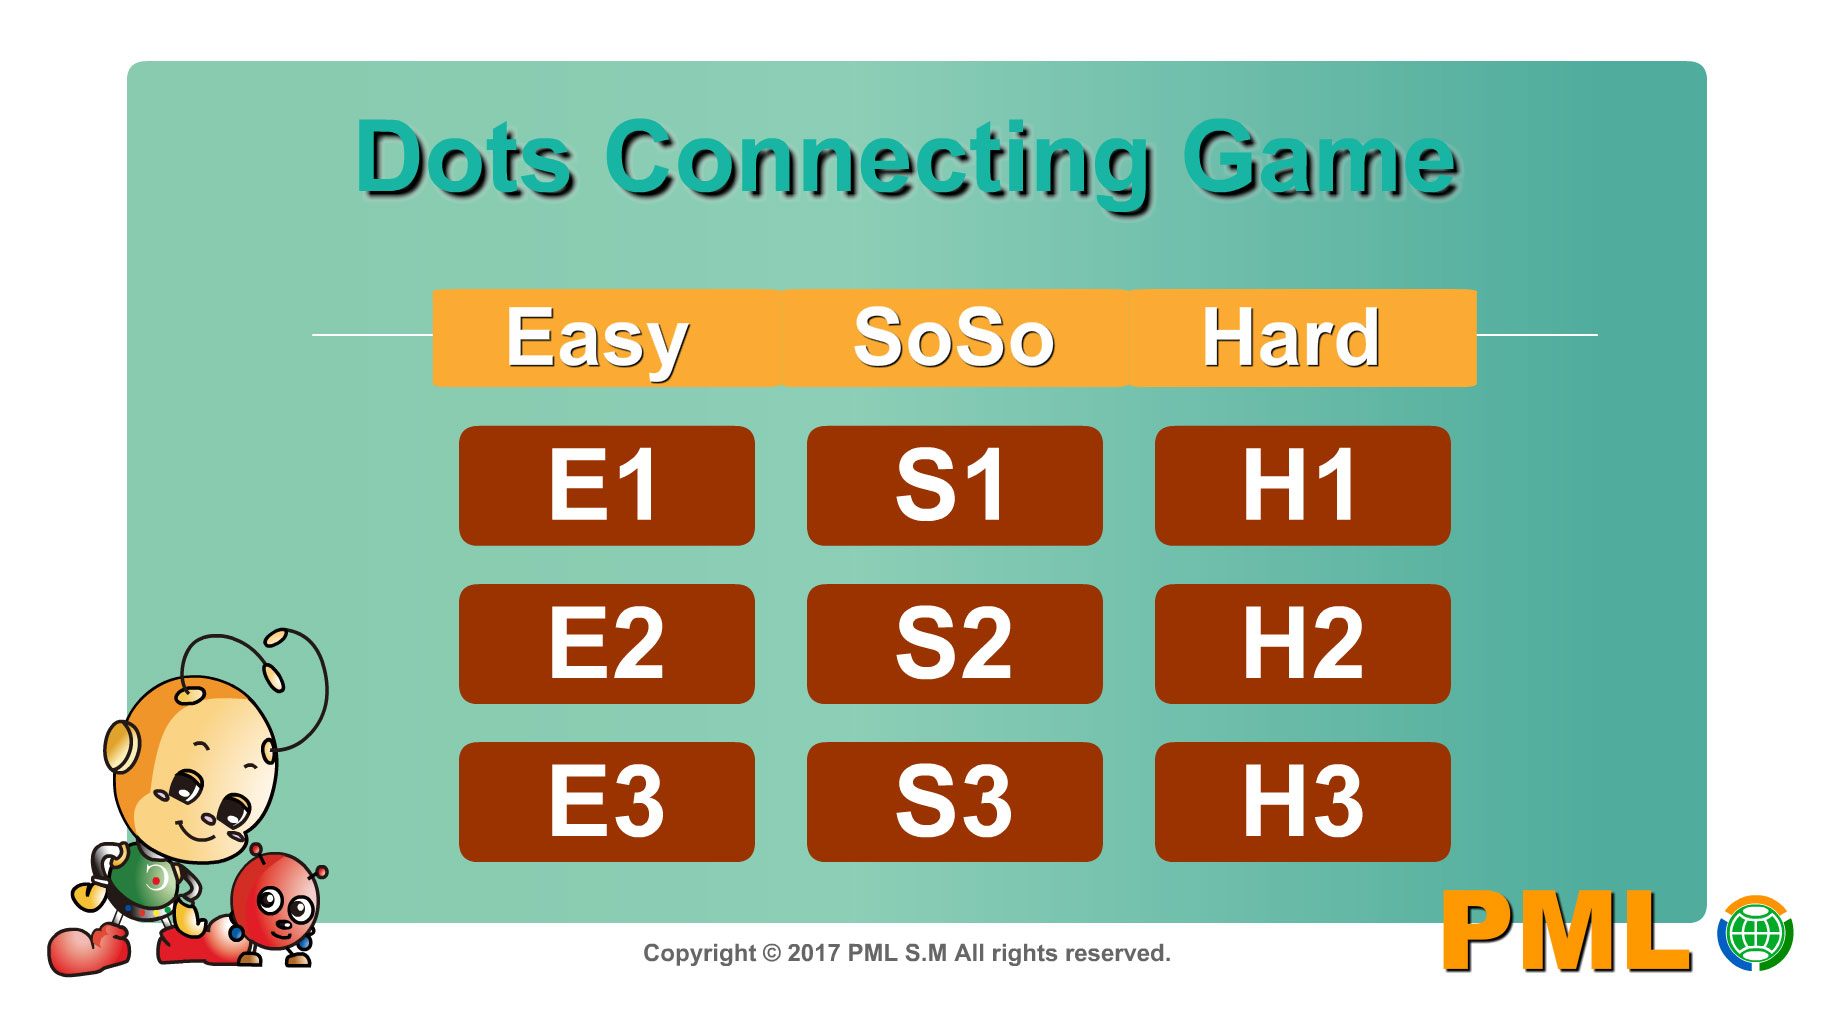 Dots Connecting Game